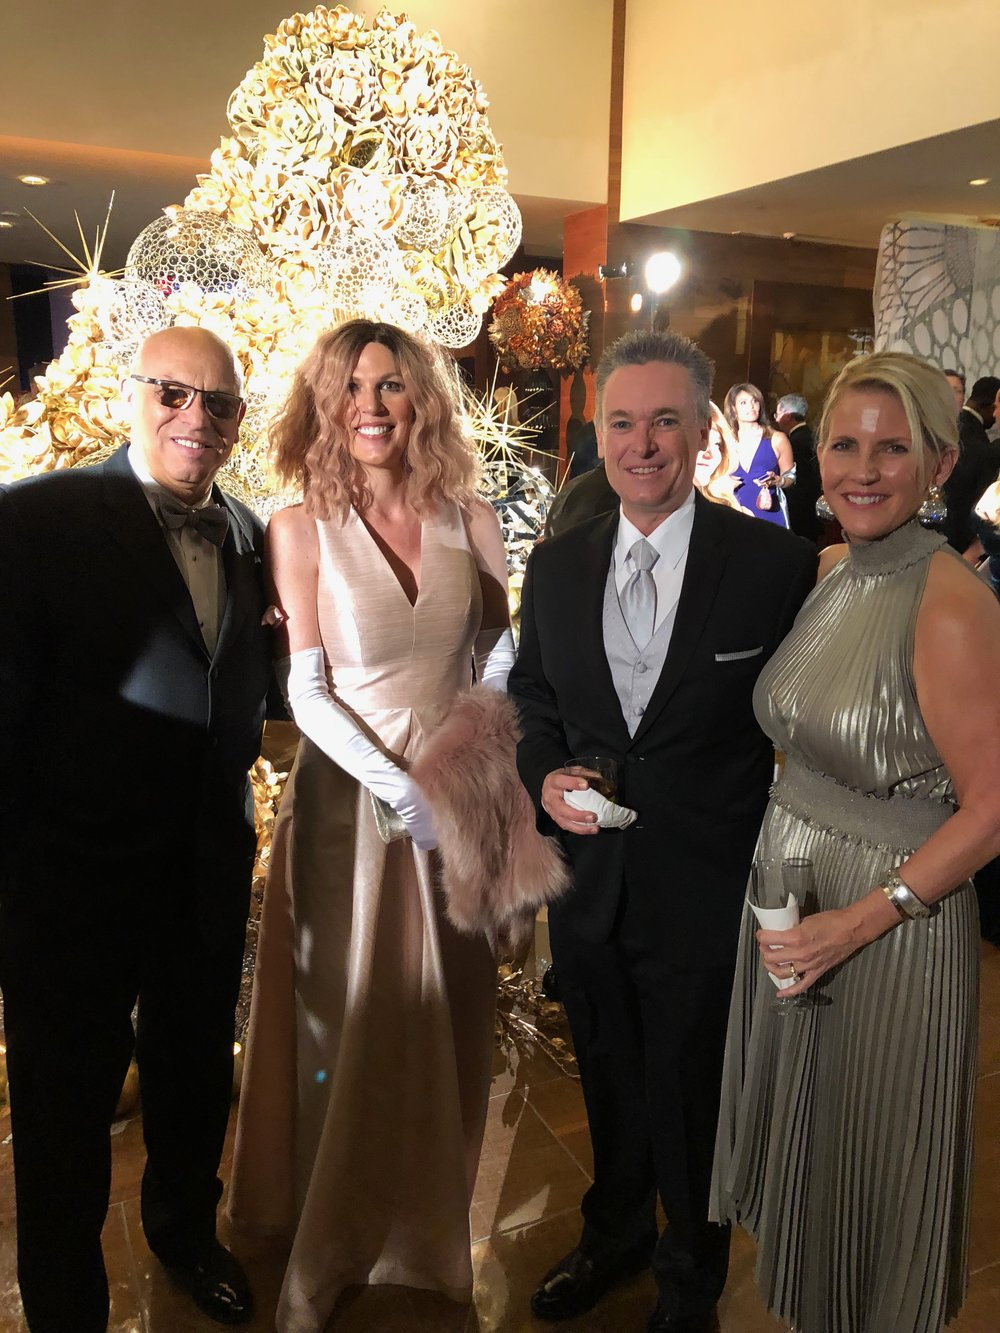 Mark, isabel, Jim and Jessica Audiss at the 2017 Heart Ball